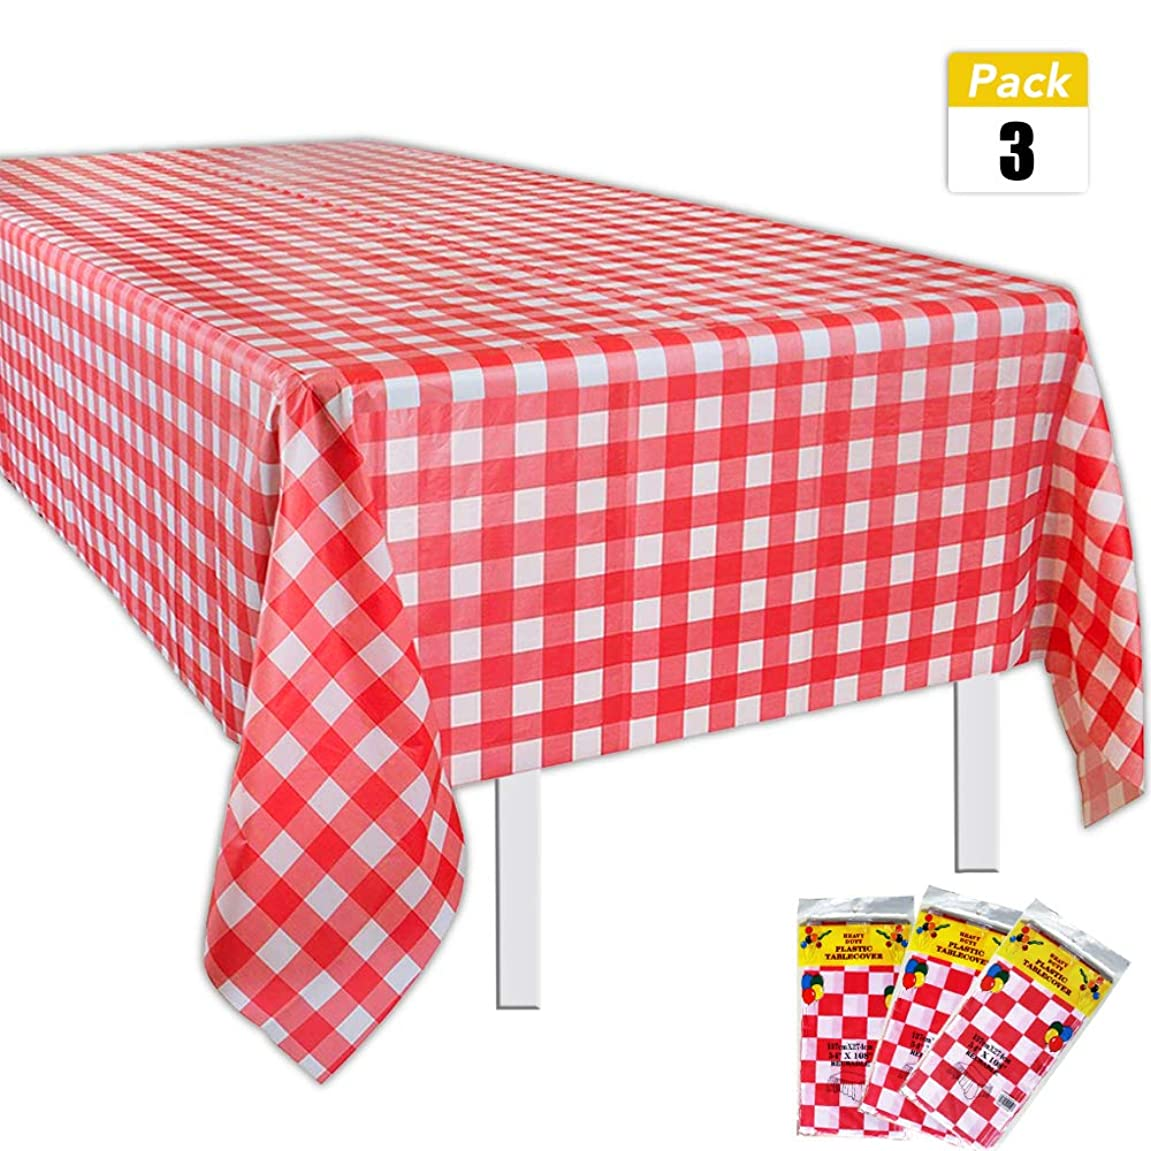 Set of 3 Plastic Red and White Checkered Tablecloths - Picnic Table Covers 54